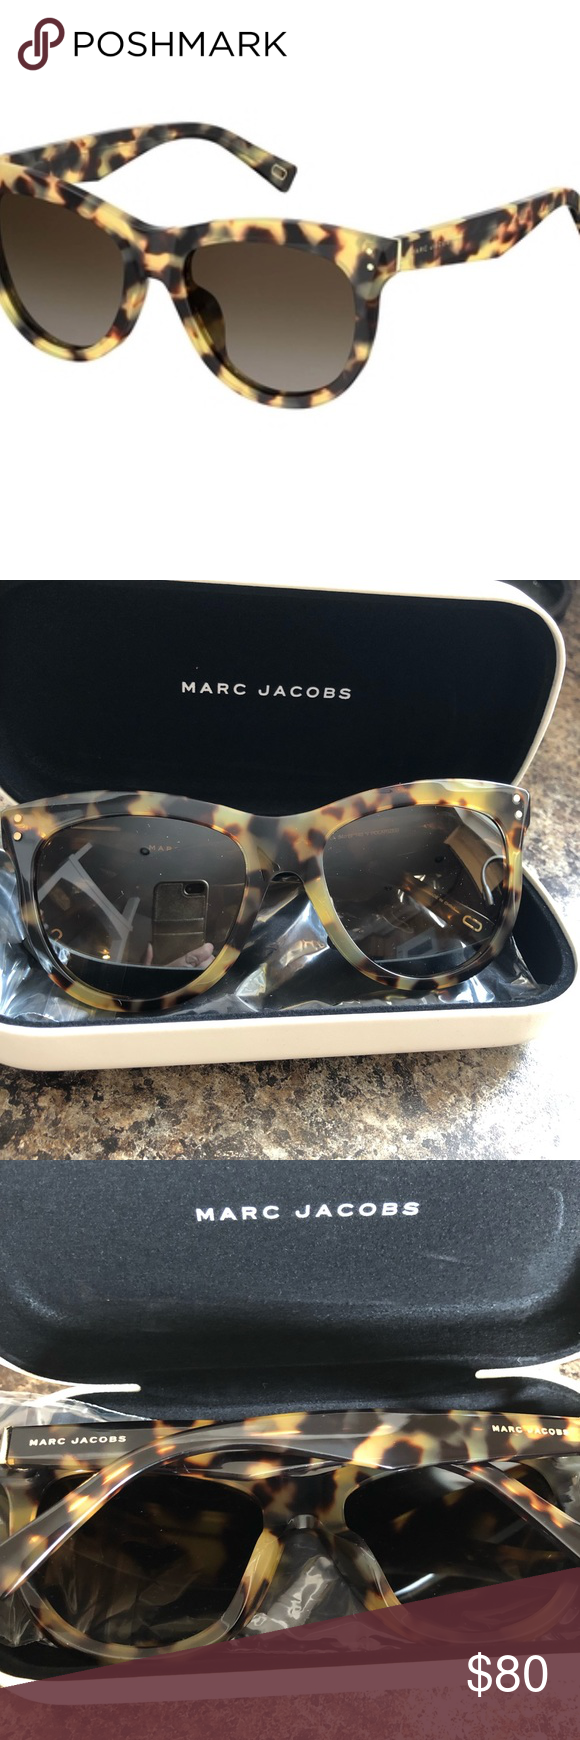 14e182a6e5ae 🌵Sale🌵NWT Marc Jacobs Sunglasses Marc Jacobs 118/S ladies sunglasses in  Havana/spotted brown. *Model shown for reference only, not available in  black.